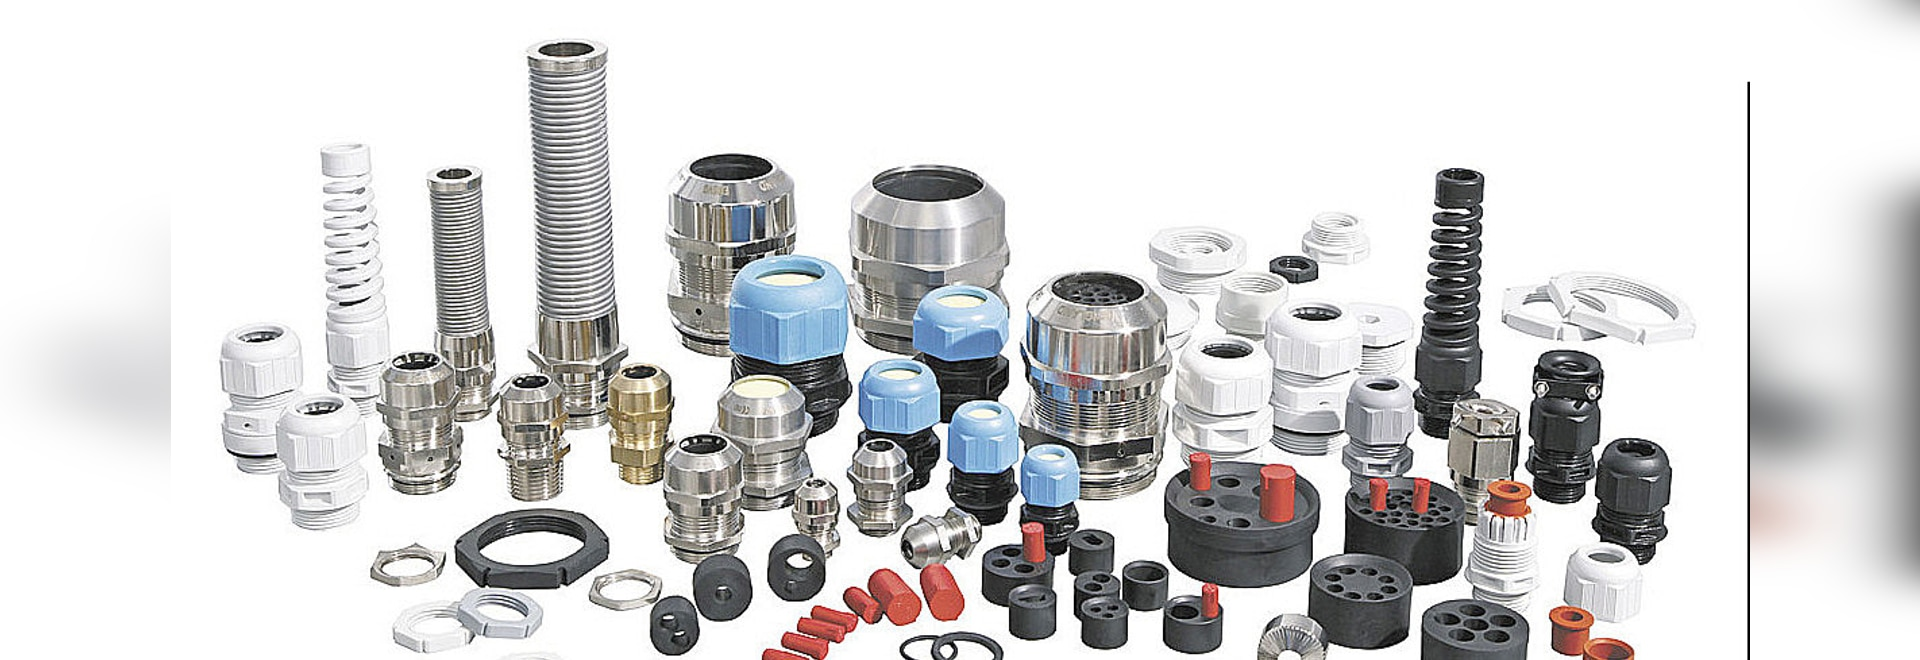 WISKA presented cable glands series for the railway industry